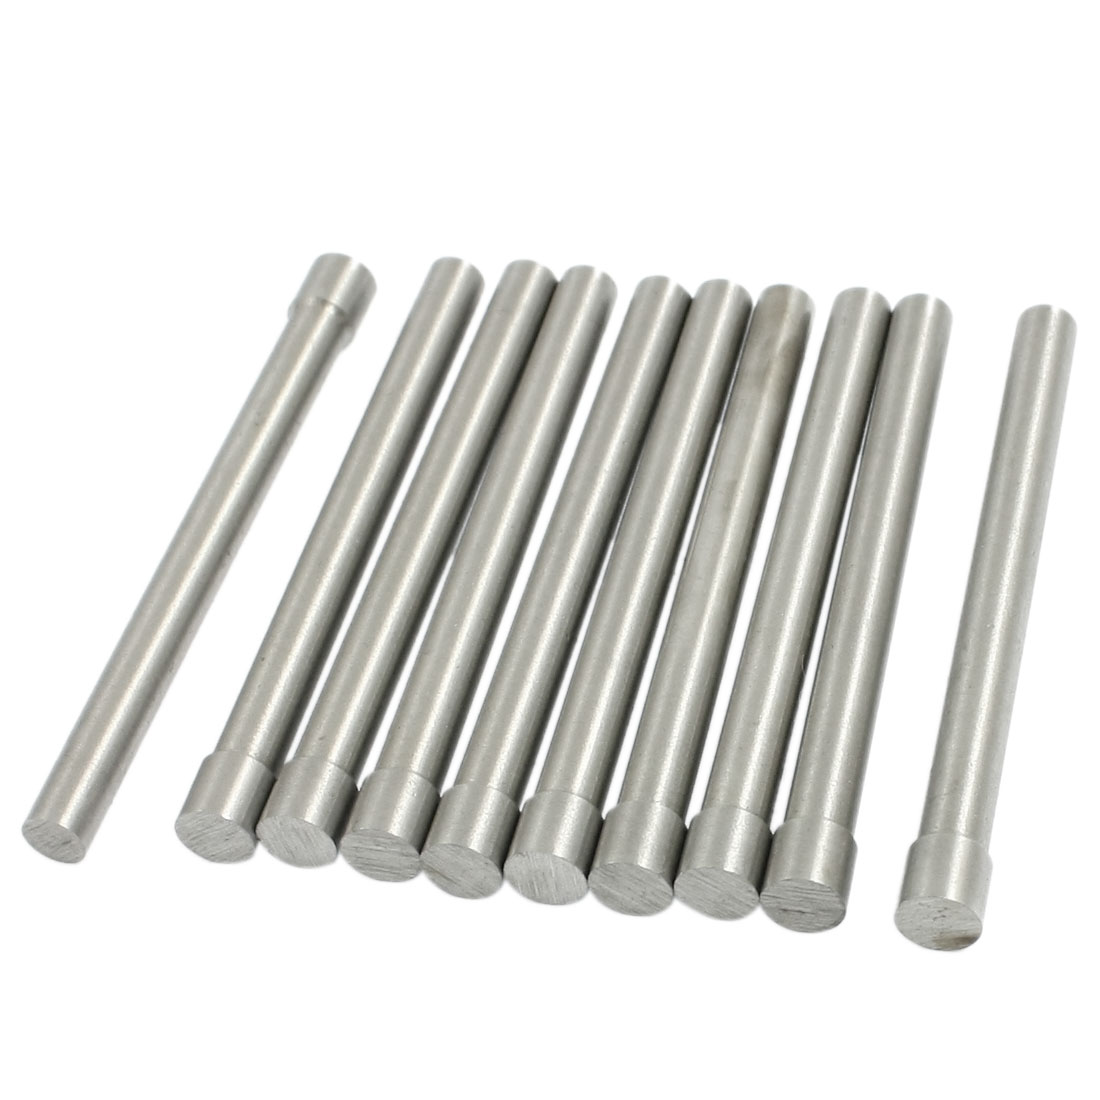 10 Pcs 5mm Diameter Round Tip Steel Pin Pilot Punch Hand Tool